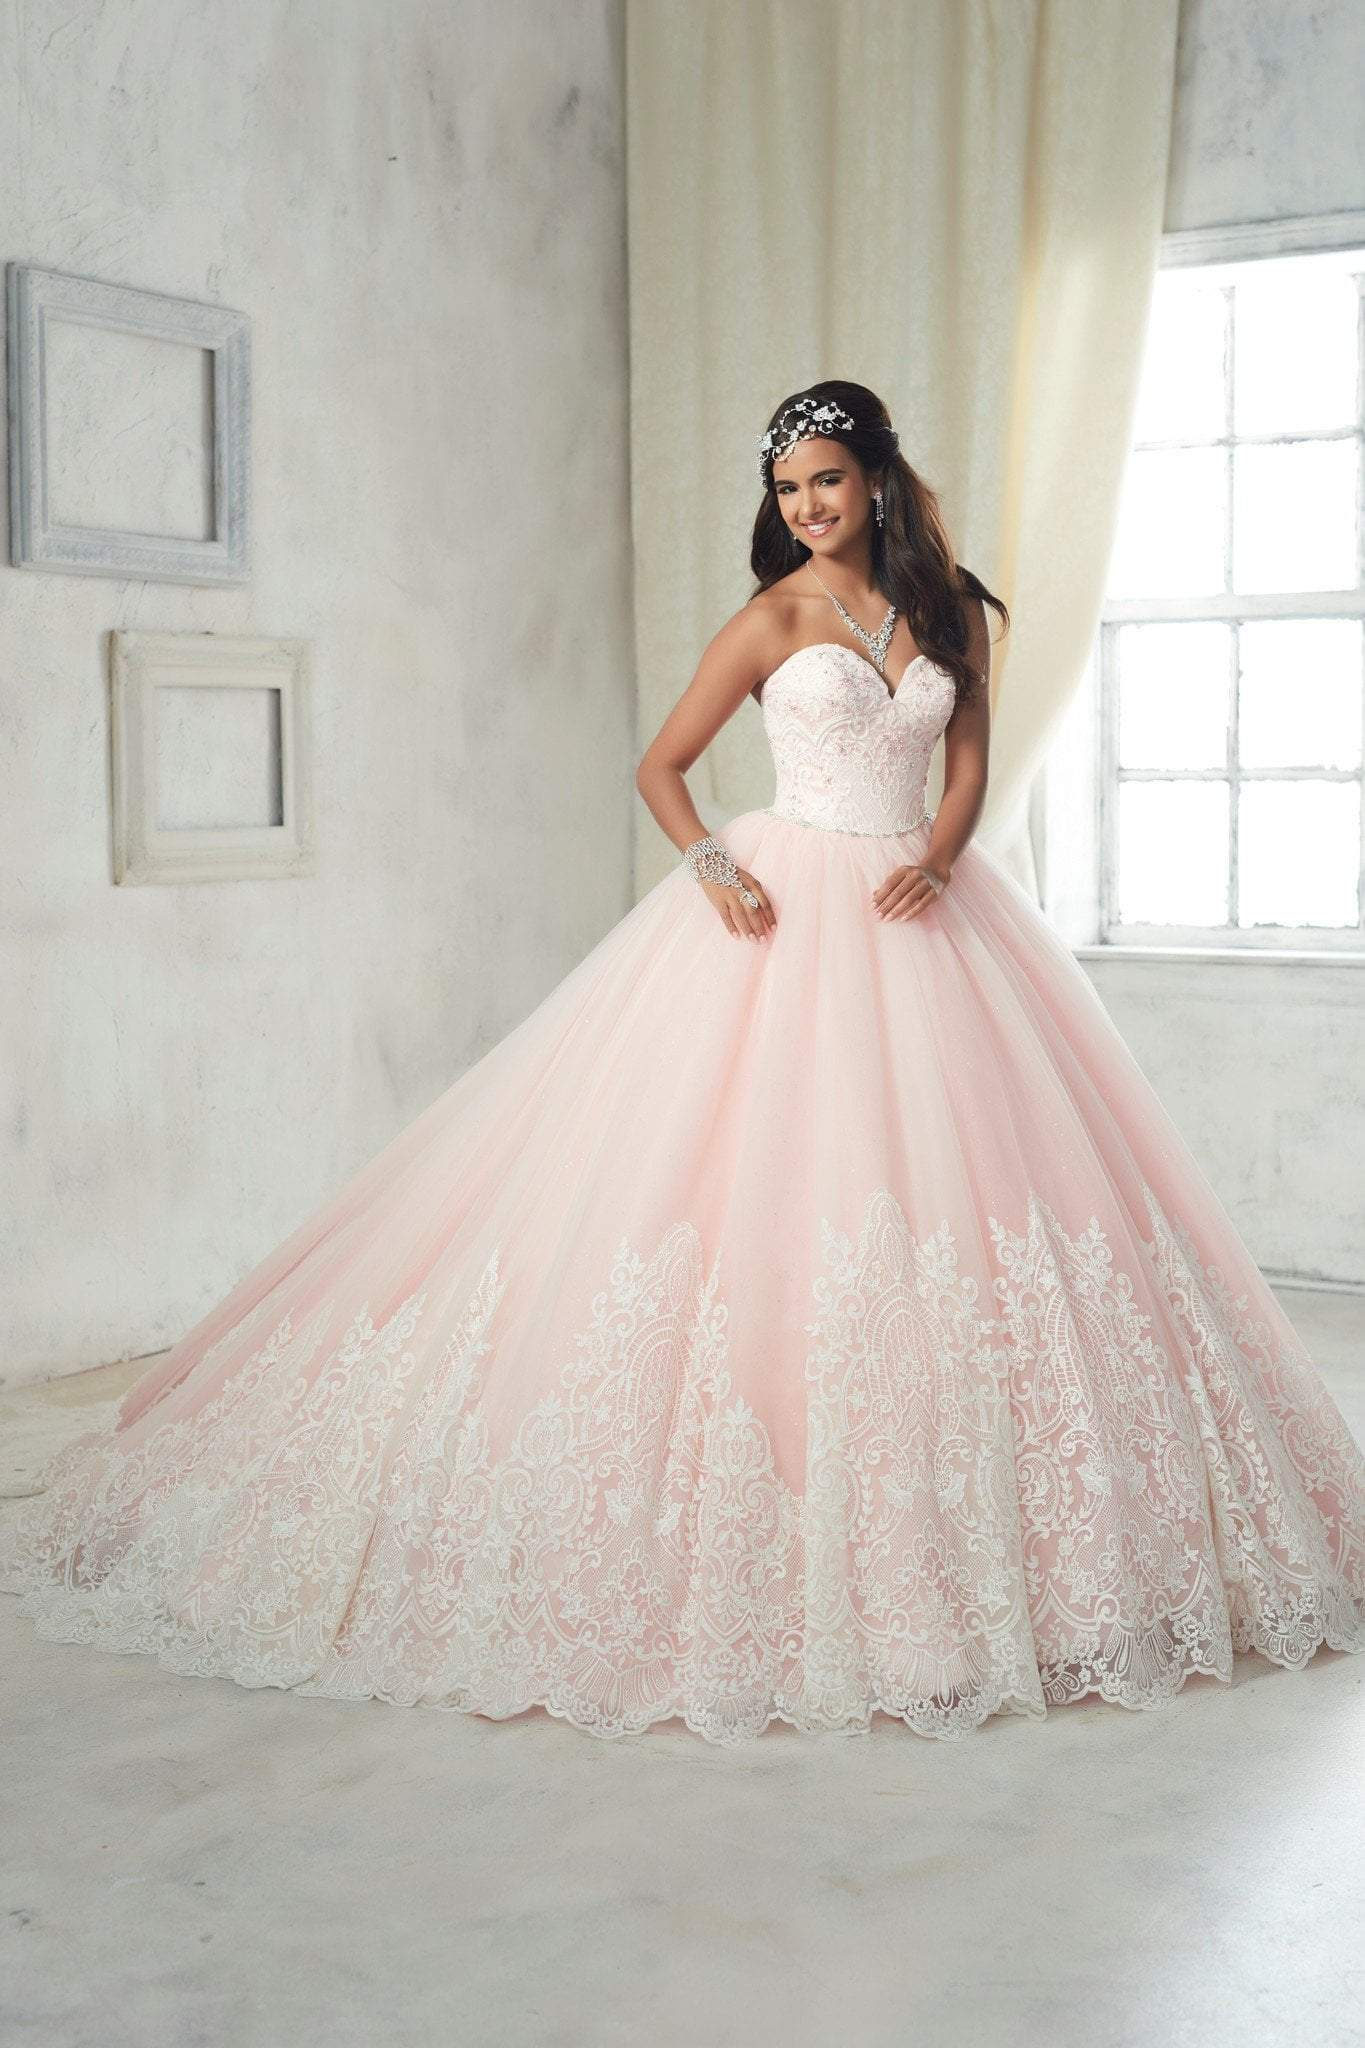 Quinceanera Collection - 26852 Lace Strapless Sweetheart Ballgown from Quinceanera Collection